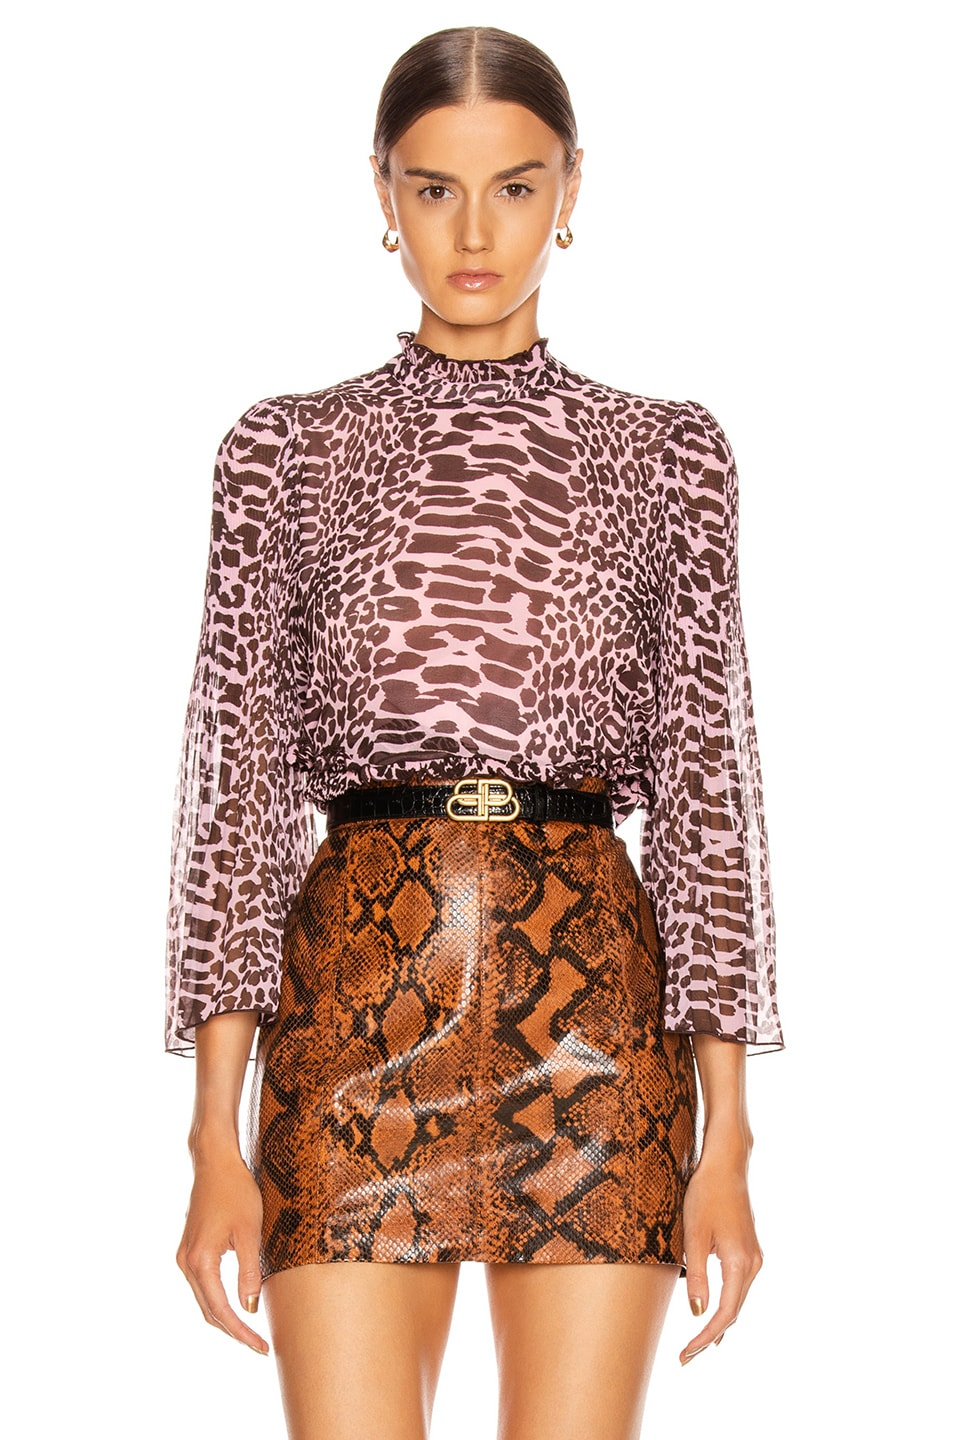 Image 1 of Ganni Pleated Georgette Top in Candy Pink and Dark Brown Leopard